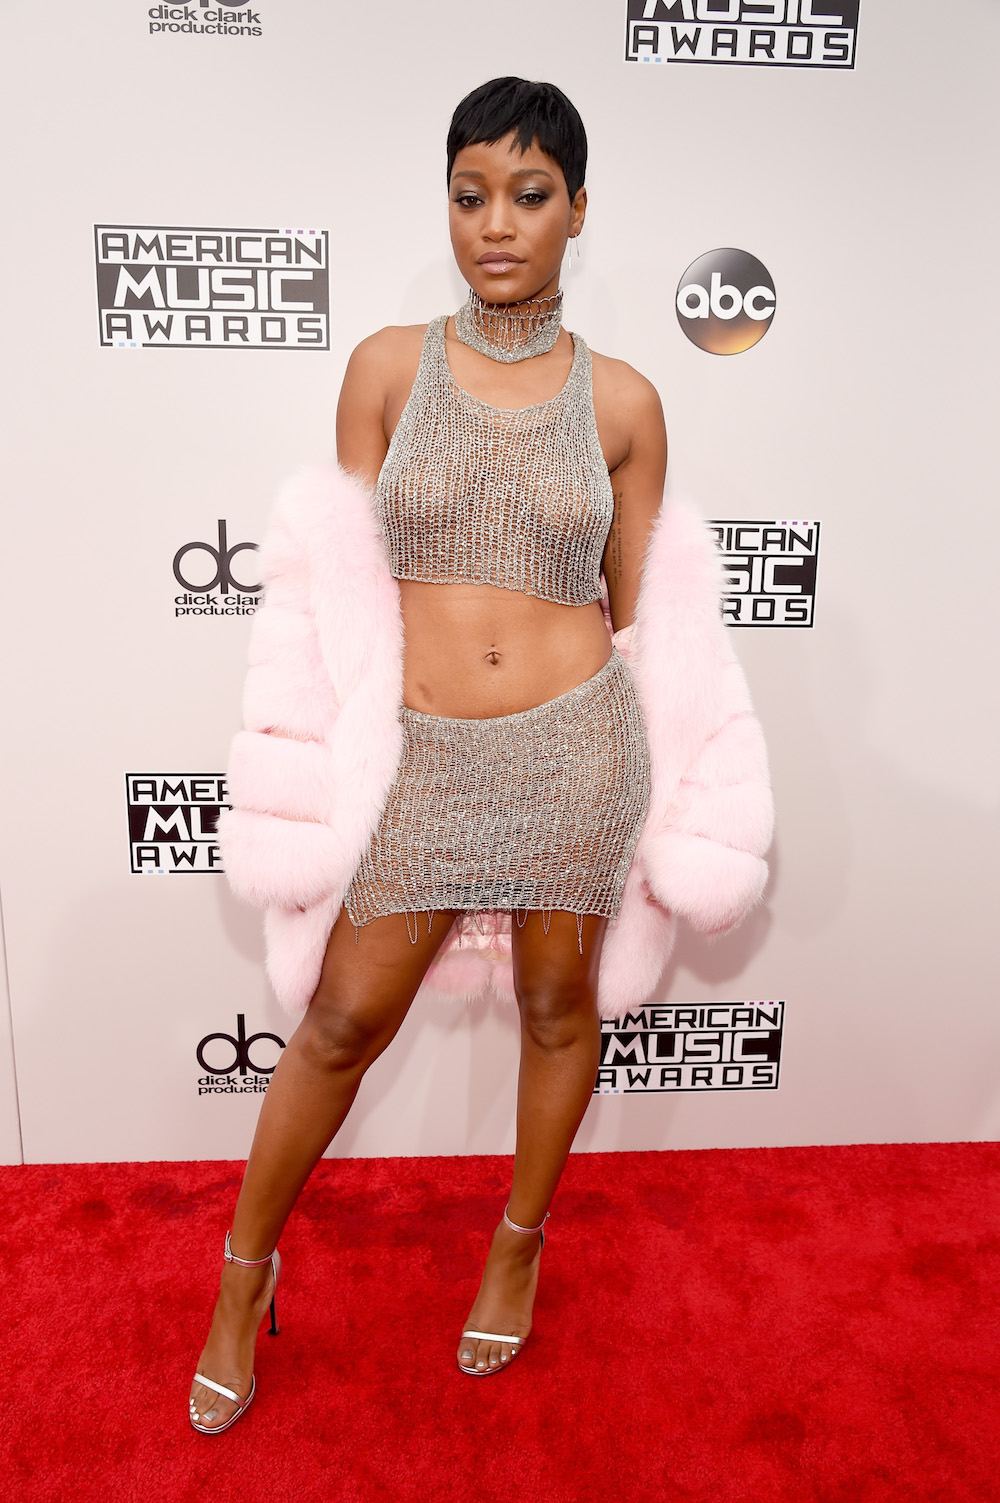 LOS ANGELES, CA - NOVEMBER 20:  Actress Keke Palmer attends the 2016 American Music Awards Red Carpet Arrivals sponsored by FIAT 124 Spider at Microsoft Theater on November 20, 2016 in Los Angeles, California.  (Photo by Kevin Mazur/AMA2016/WireImage)